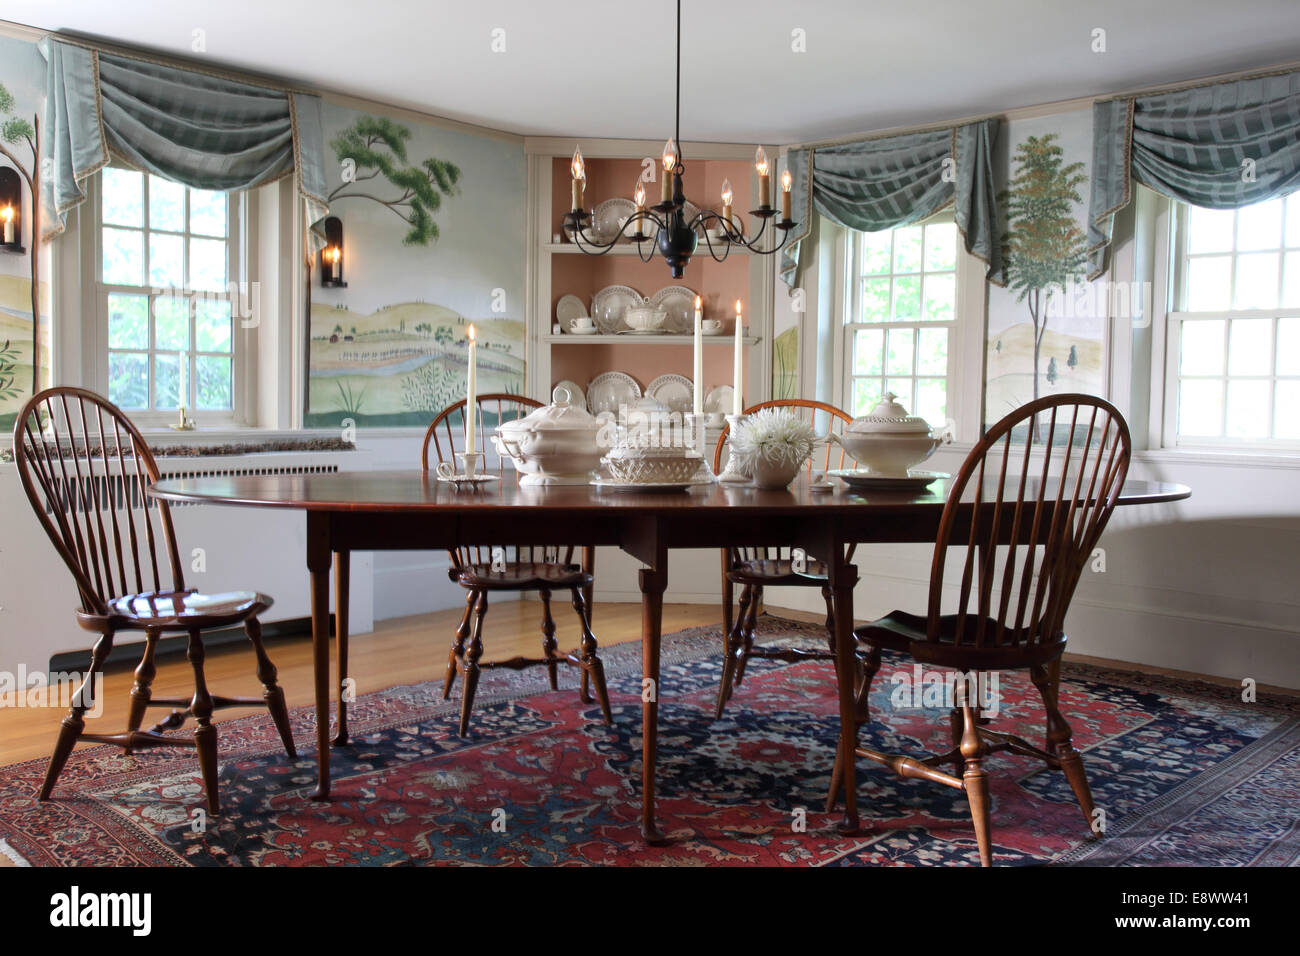 Dining Room With Wall Mural Of Countryside In Folk Art Style Table White China Serving Bowls And A Built Corner Cabinet Displaying